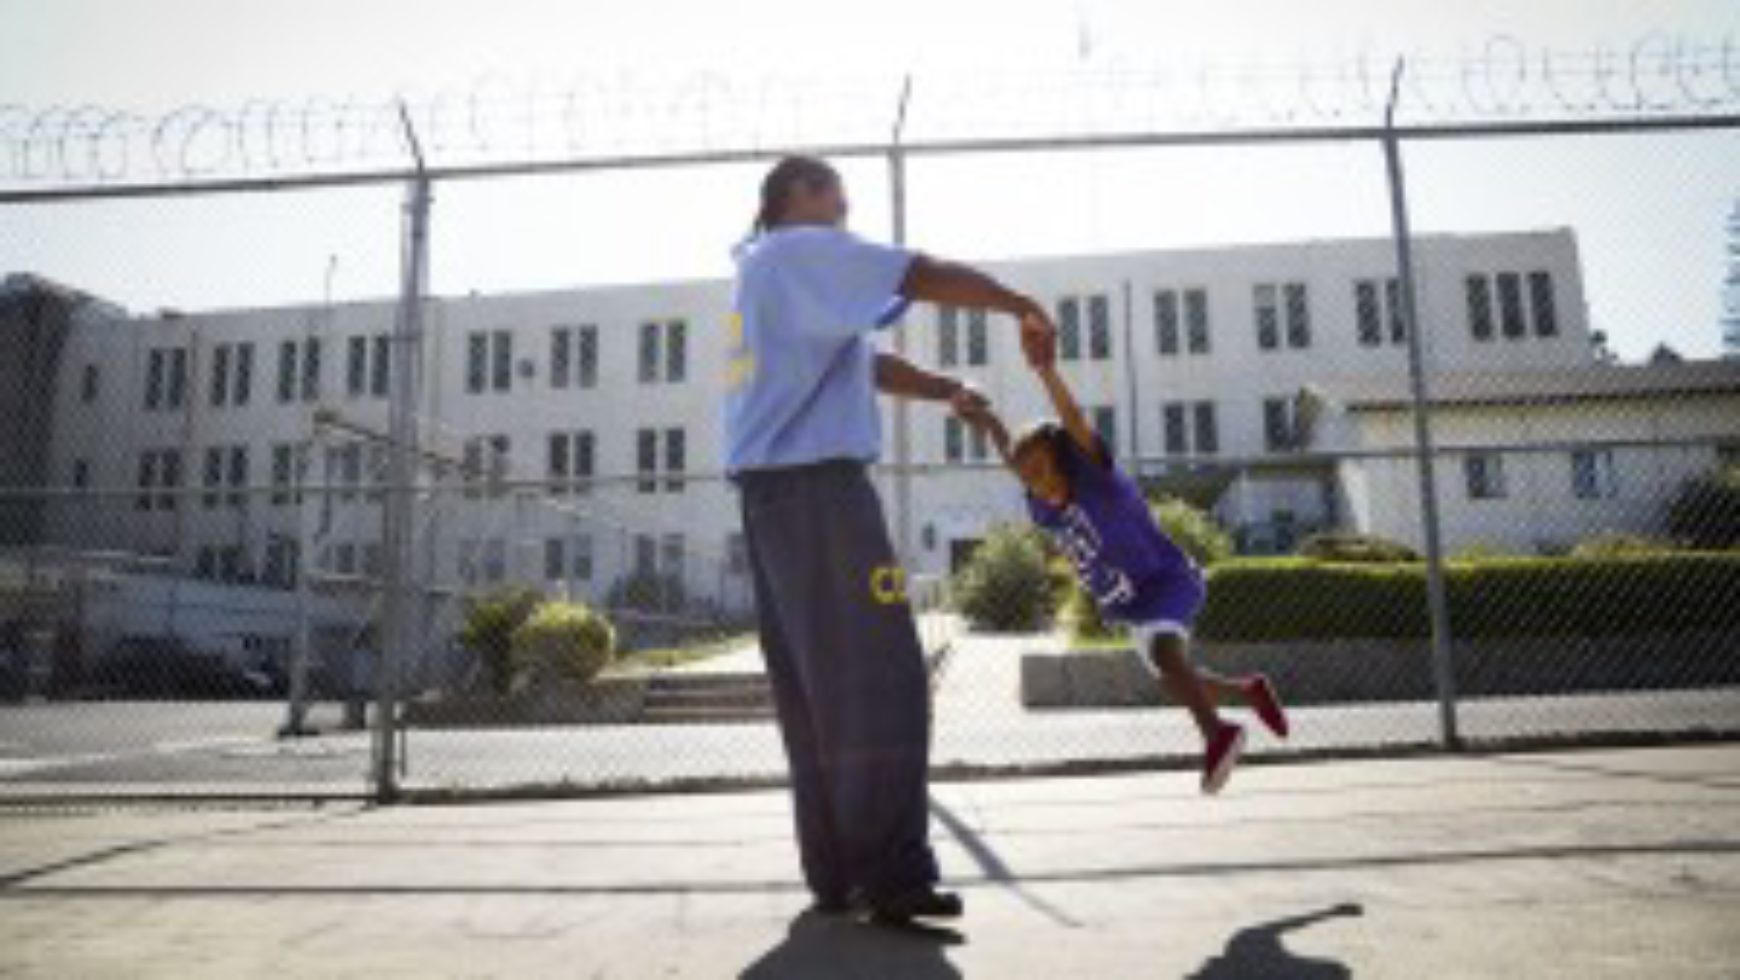 The Crippling Effects of Parental Incarceration: unprepared for school